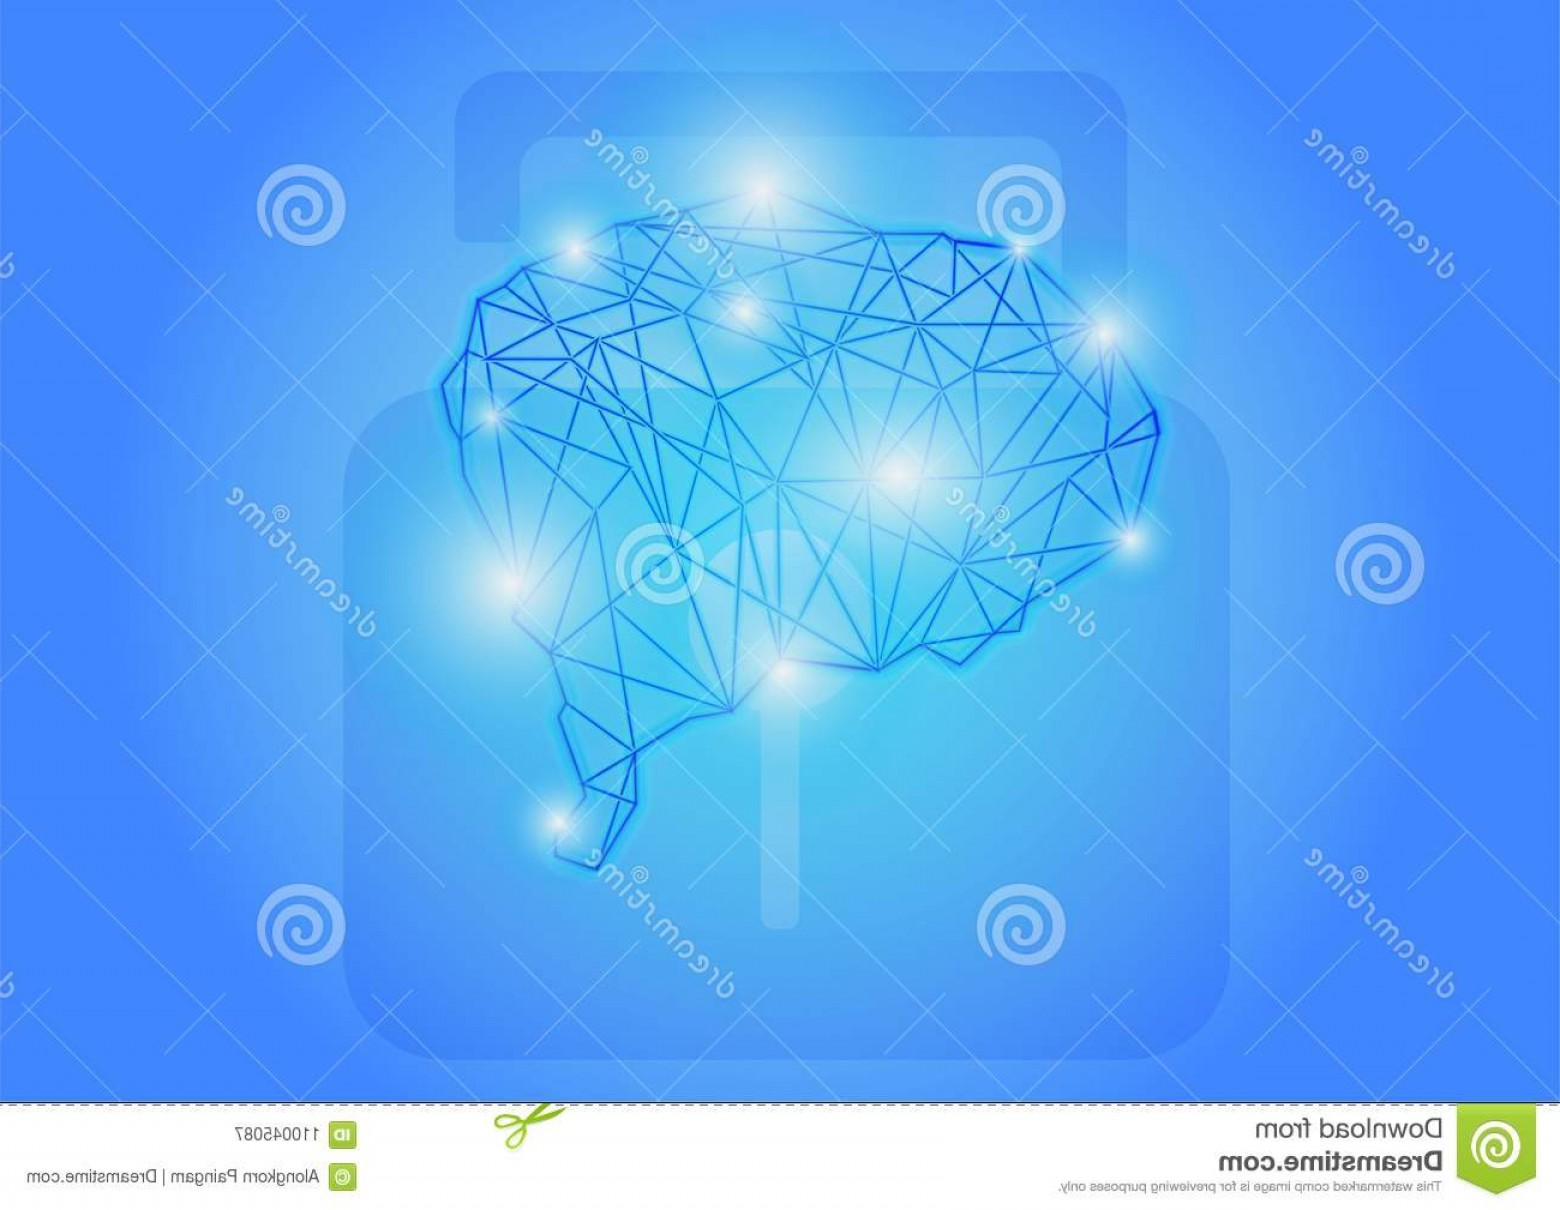 Open VI Stock Vector: Unlock Brain To Infity Knowledge Successful Open Vi Vision Think Way Success Sampletext Copyspace Image